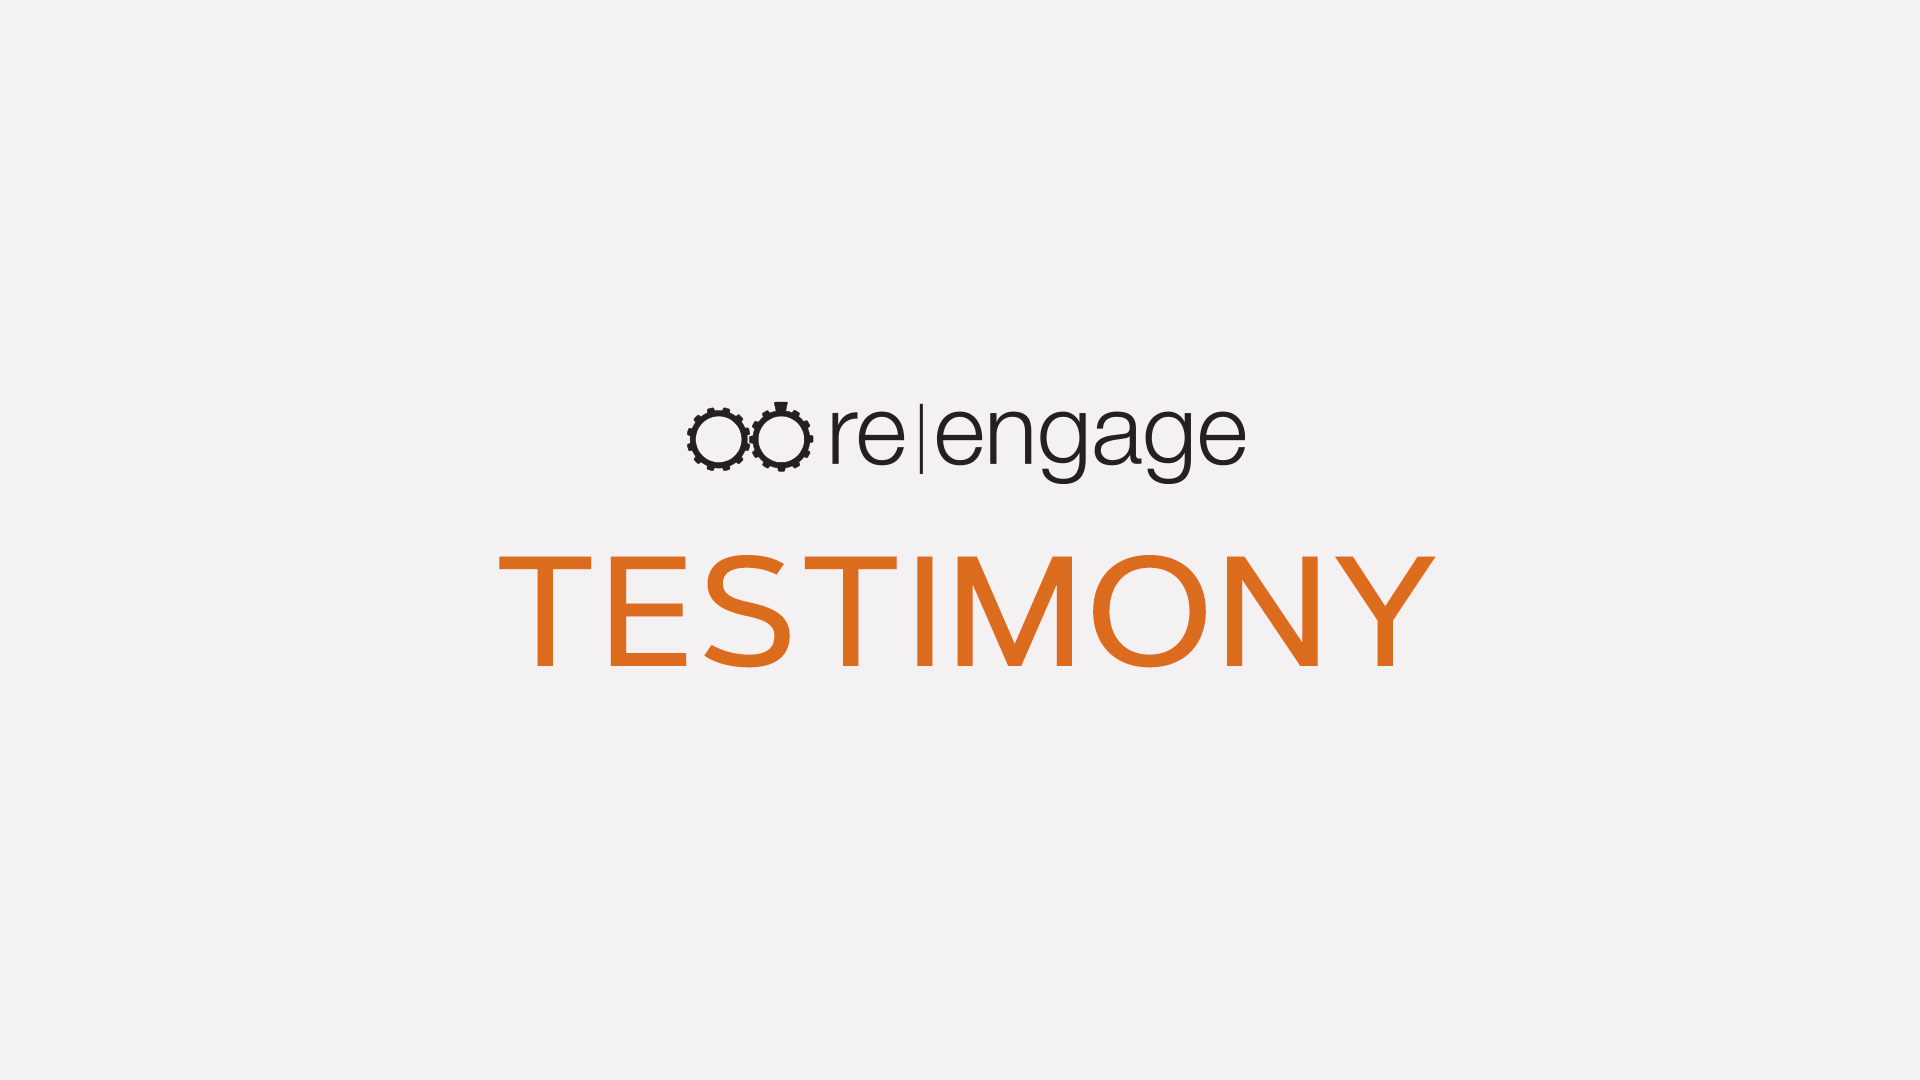 Bryce and Elizabeth Erickson - re|engage Testimony